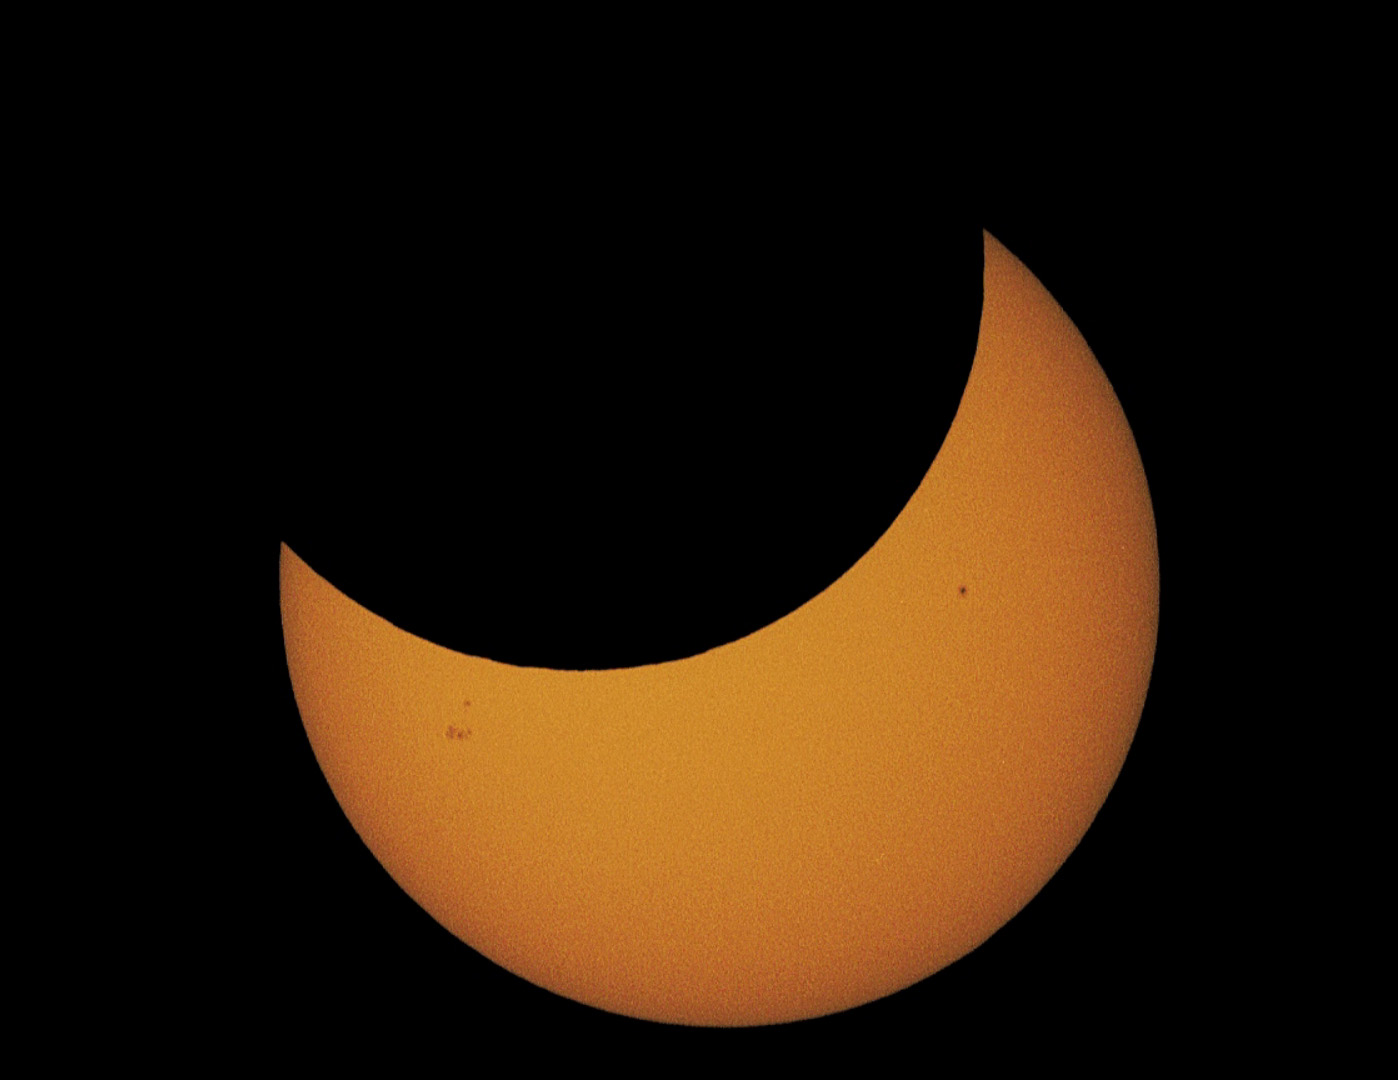 Partial Solar Eclipse Visible from Australia: April 2014